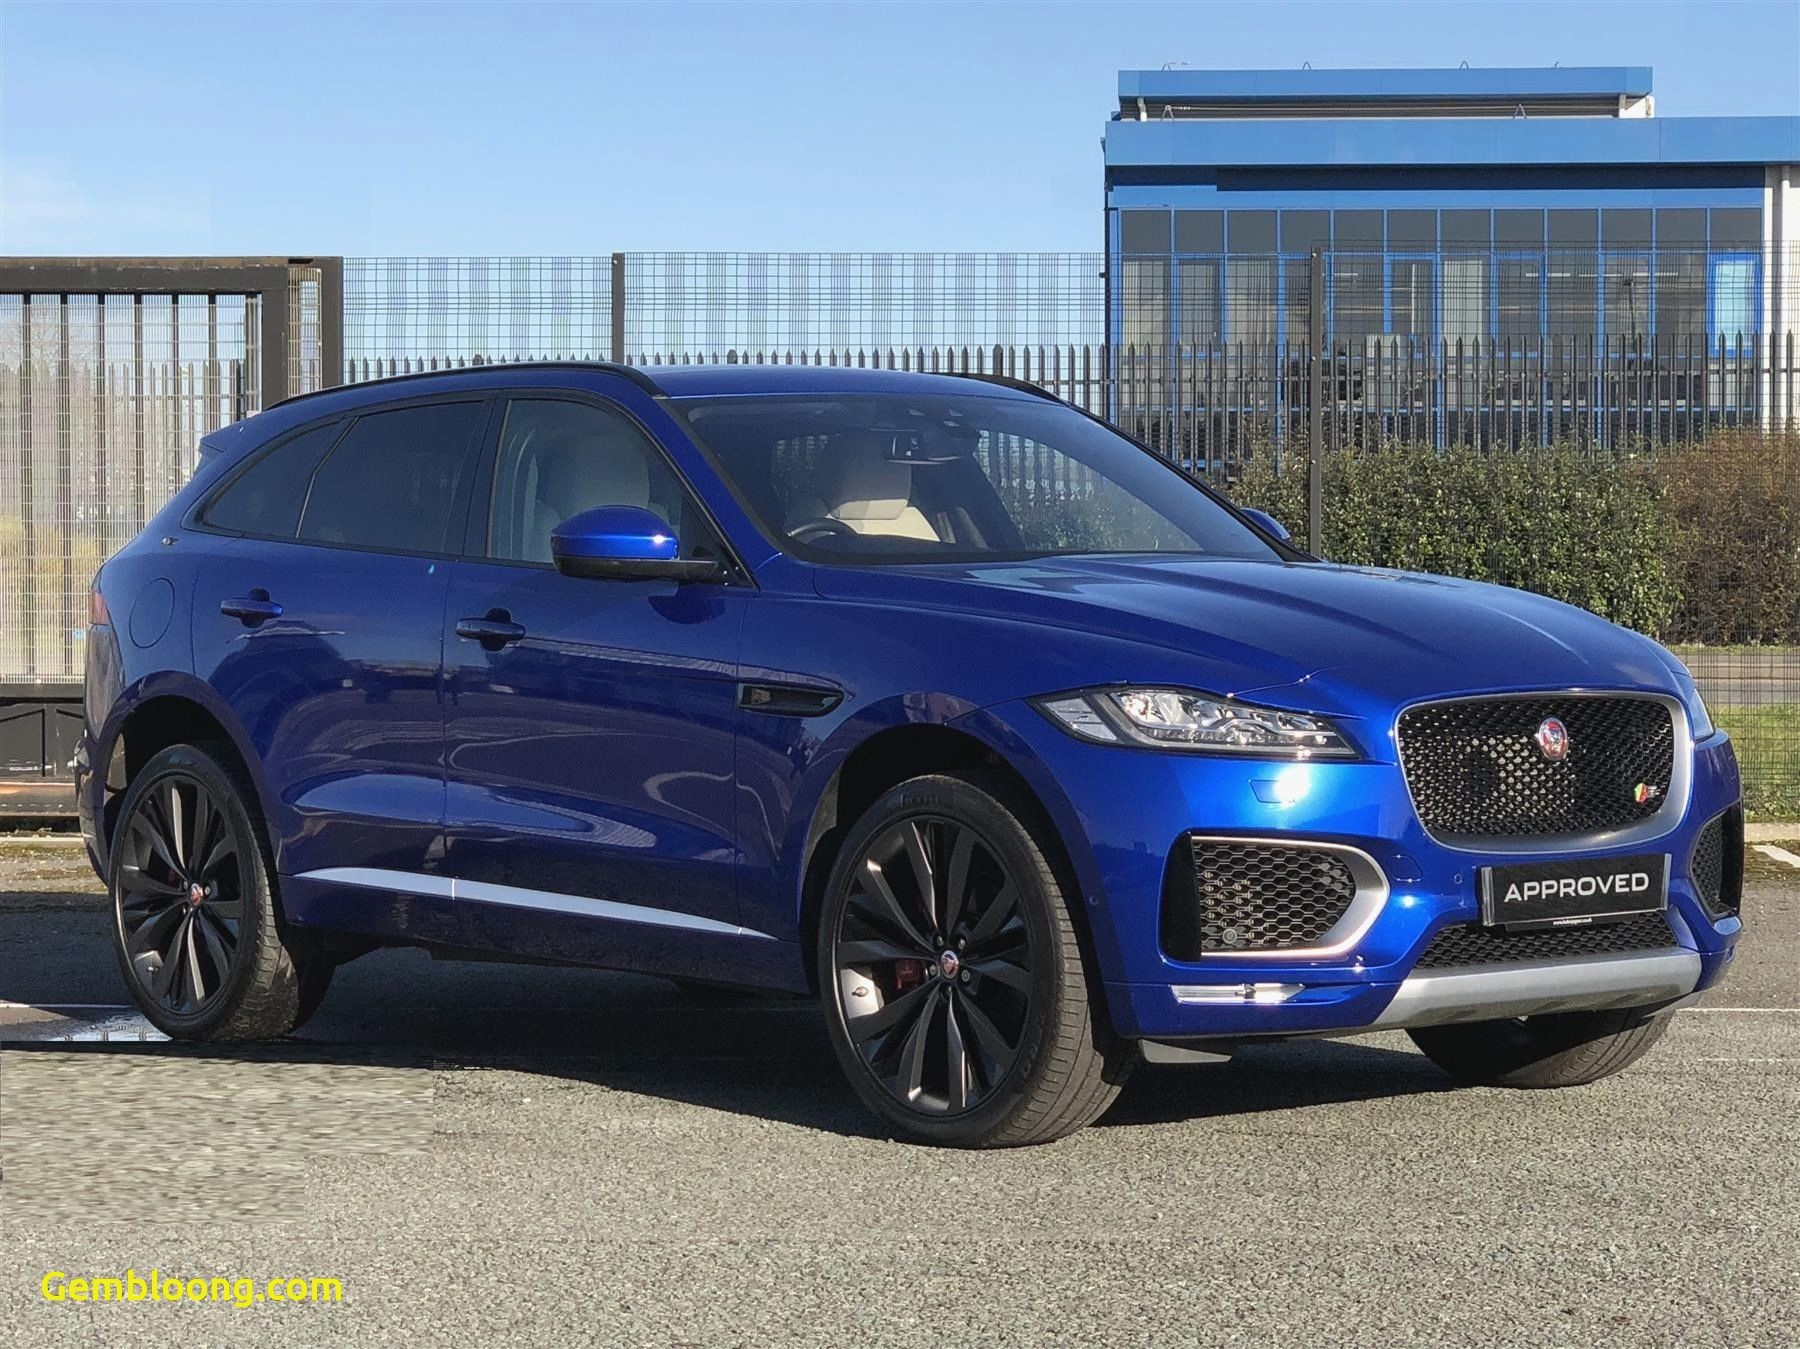 Looking for A Good Used Car Elegant All Used Cars for Sale Awesome Best Used 2016 Jaguar F Pace